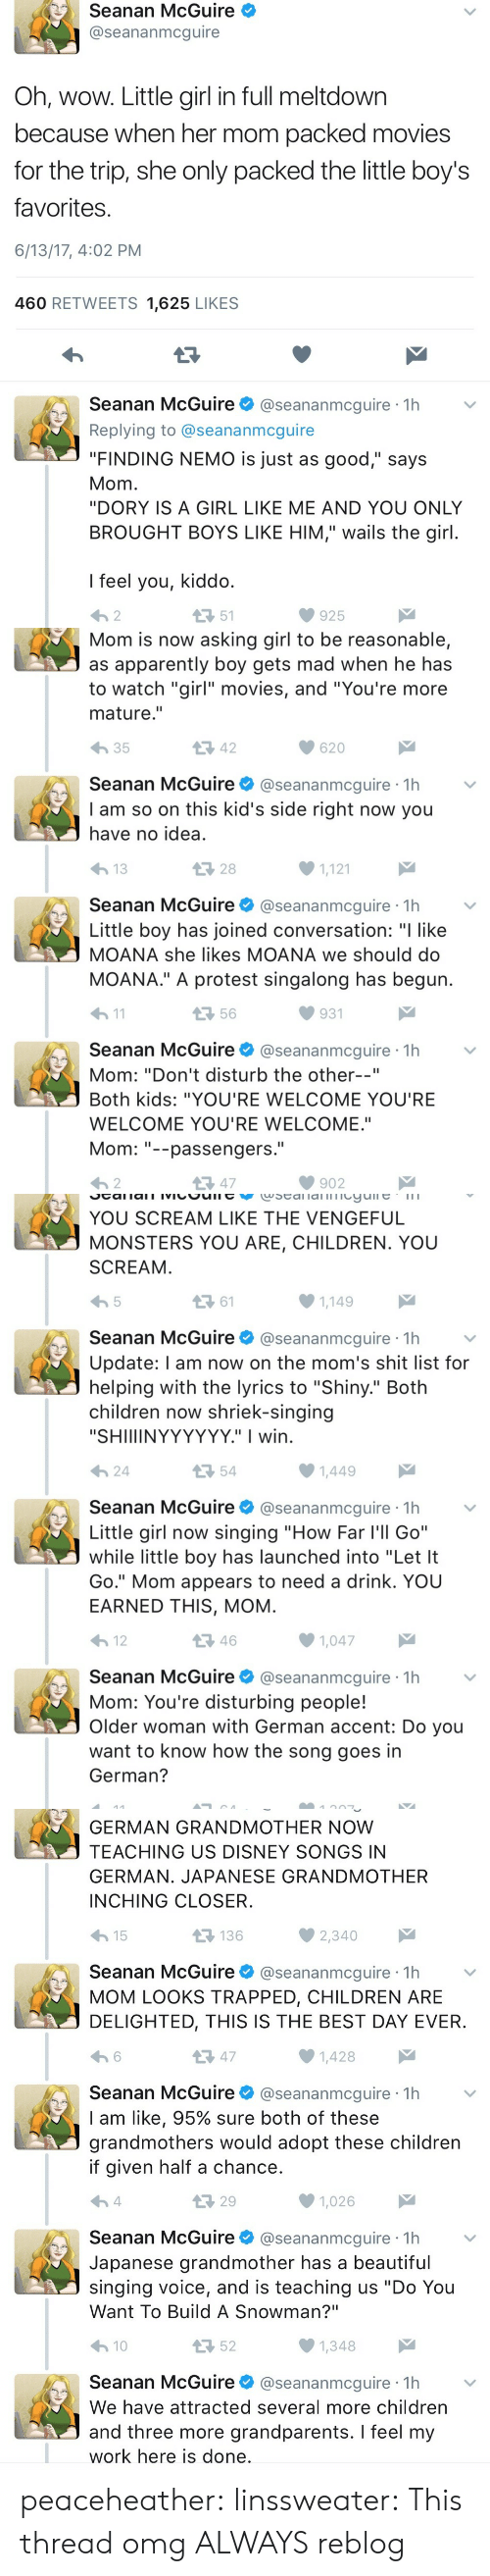 "Let It Go: Seanan McGuire  @seananmcguire  Oh, wow. Little girl in full meltdown  because when her mom packed movies  for the trip, she only packed the little boy's  favorites  6/13/17, 4:02 PM  460 RETWEETS 1,625 LIKES  Seanan McGuire@seananmcguire 1h  Replying to @seananmcguire  ""FINDING NEMO is just as good,"" says  Mom  ""DORY IS A GIRL LIKE ME AND YOU ONLY  BROUGHT BOYS LIKE HIM,"" wails the girl  I feel you, kiddo  わ2  51  925   Mom is now asking girl to be reasonable,  as apparently boy gets mad when he has  to watch ""girl"" movies, and ""You're more  mature.""  わ35  42  620  Seanan McGuire@seananmcguire 1h  I am so on this kid's side right now you  have no idea  28  1,121  Seanan McGuire@seananmcguire 1h  Little boy has joined conversation: ""I like  MOANA she likes MOANA we should do  MOANA."" A protest singalong has begun  h1  56  931  Seanan McGuire@seananmcguire 1h  Mom: ""Don't disturb the other--""  Both kids: ""YOU'RE WELCOME YOU'RE  WELCOME YOU'RE WELCOME.""  Mom--passengers.  わ2  다 47  902   YOU SCREAM LIKE THE VENGEFUL  MONSTERS YOU ARE, CHILDREN. YOU  SCREAM  ロ61  1,149  Seanan McGuire@seananmcguire 1h  Update: l am now on the mom's shit list for  helping with the lyrics to ""Shiny."" Both  children now shriek-singing  ""SHIIIINYYYYYY."" I wirn  24  54  Seanan McGuireネ@seananmcgure·1h  Little girl now singing ""How Far l'll Go""  while little boy has launched into ""Let It  Go."" Mom appears to need a drink. YOU  EARNED THIS, MOM  12  46  1,047  Seanan McGuire@seananmcguire 1h  Mom: You're disturbing people!  Older woman with German accent: Do you  want to know how the song goes in  German?   GERMAN GRANDMOTHER NOW  TEACHING US DISNEY SONGS IN  GERMAN. JAPANESE GRANDMOTHER  INCHING CLOSER  15  136  Seanan McGuire@seananmcguire 1h  MOM LOOKS TRAPPED, CHILDREN ARE  DELIGHTED, THIS IS THE BEST DAY EVER  13 47  1,428  Seanan McGuire@seananmcguire 1h  I am like, 95% sure both of these  grandmothers would adopt these children  if given half a chance  29  1,026  Seanan McGuire @seananmcguire·1h  Japanese grandmother has a beautiful  singing voice, and is teaching us ""Do You  Want To Build A Snowman?""  10  52  Seanan McGuire@seananmcguire 1h  We have attracted several more children  and three more grandparents. I feel my  work here is done peaceheather:  linssweater: This thread omg ALWAYS reblog"